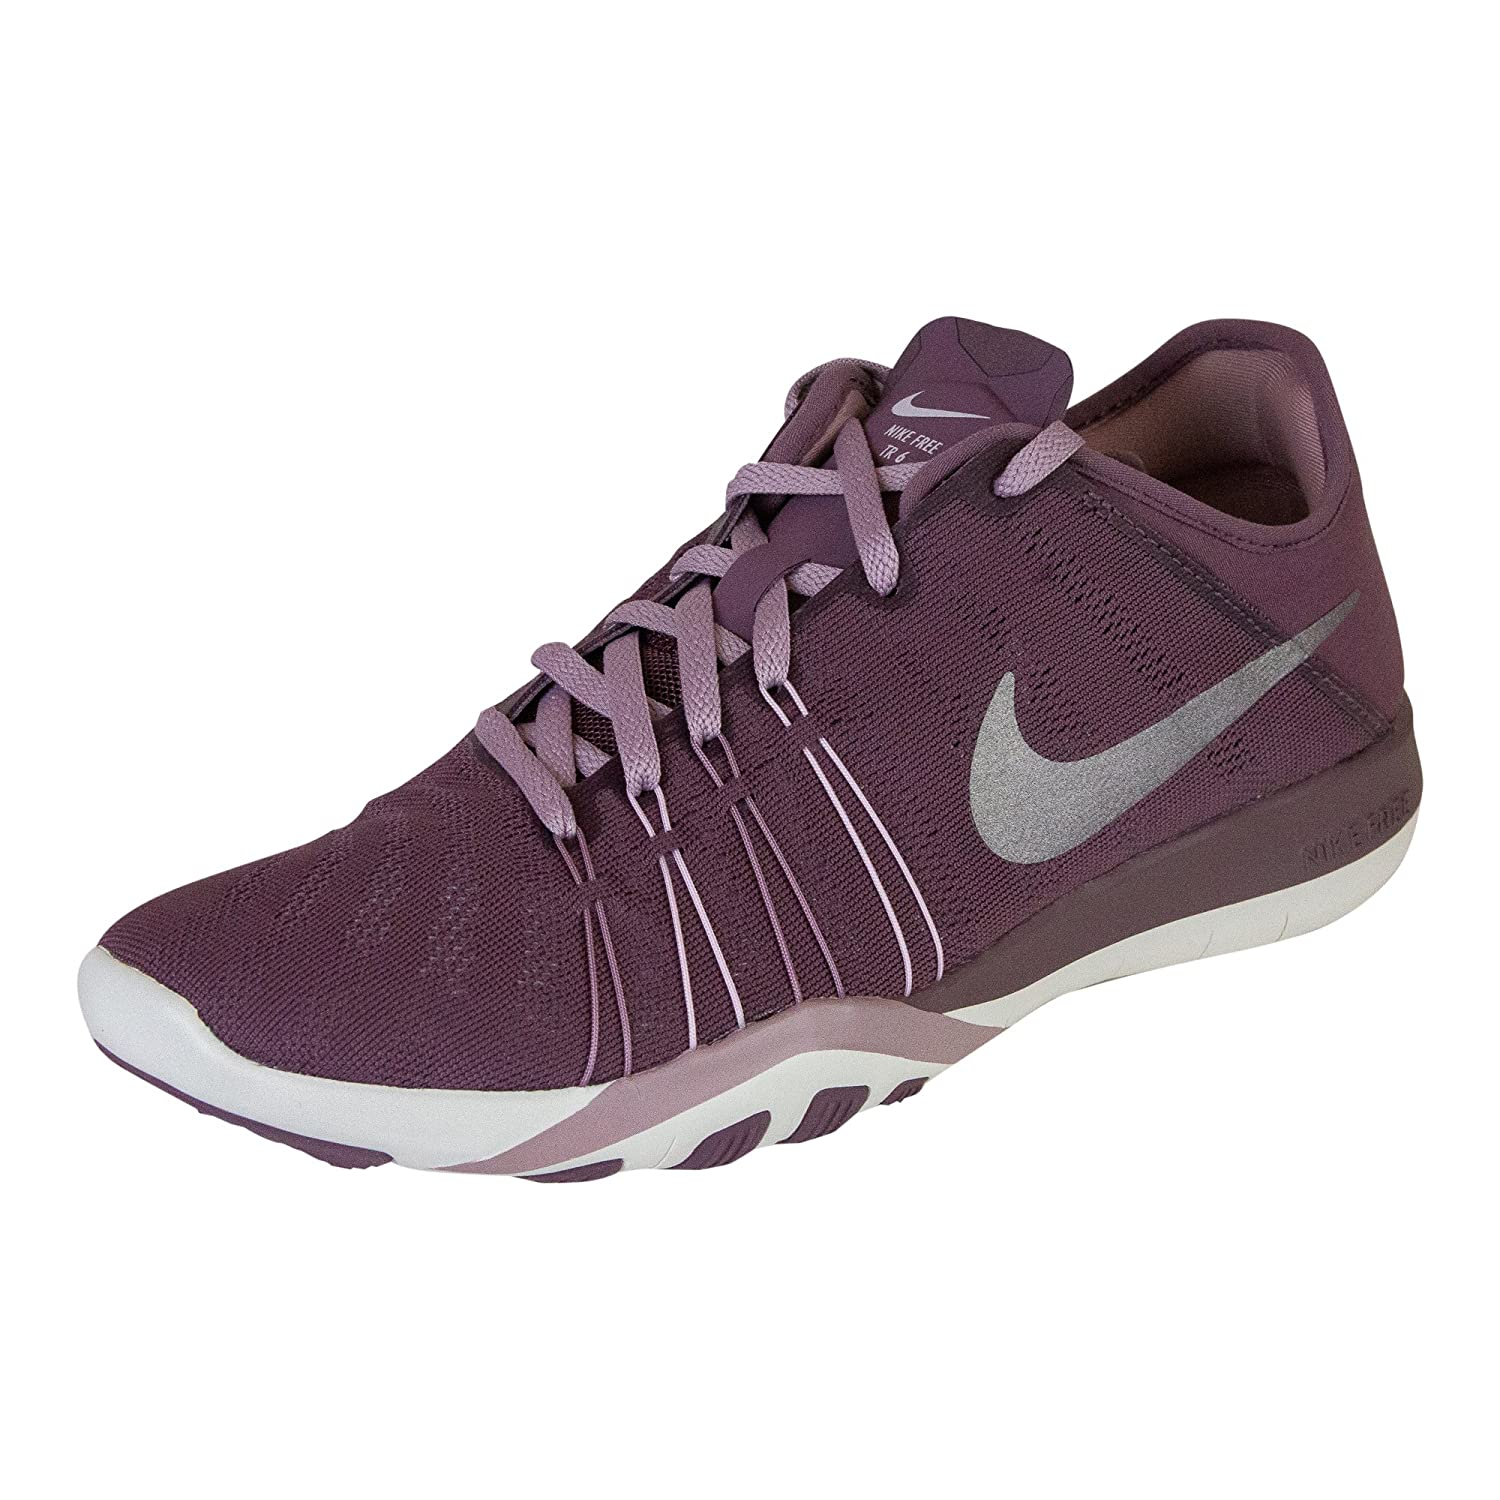 Womens Nike Free TR 6 Training Shoes B01DL1YGLI 9 B(M) US|Purple Shade Bleached Lilac 502